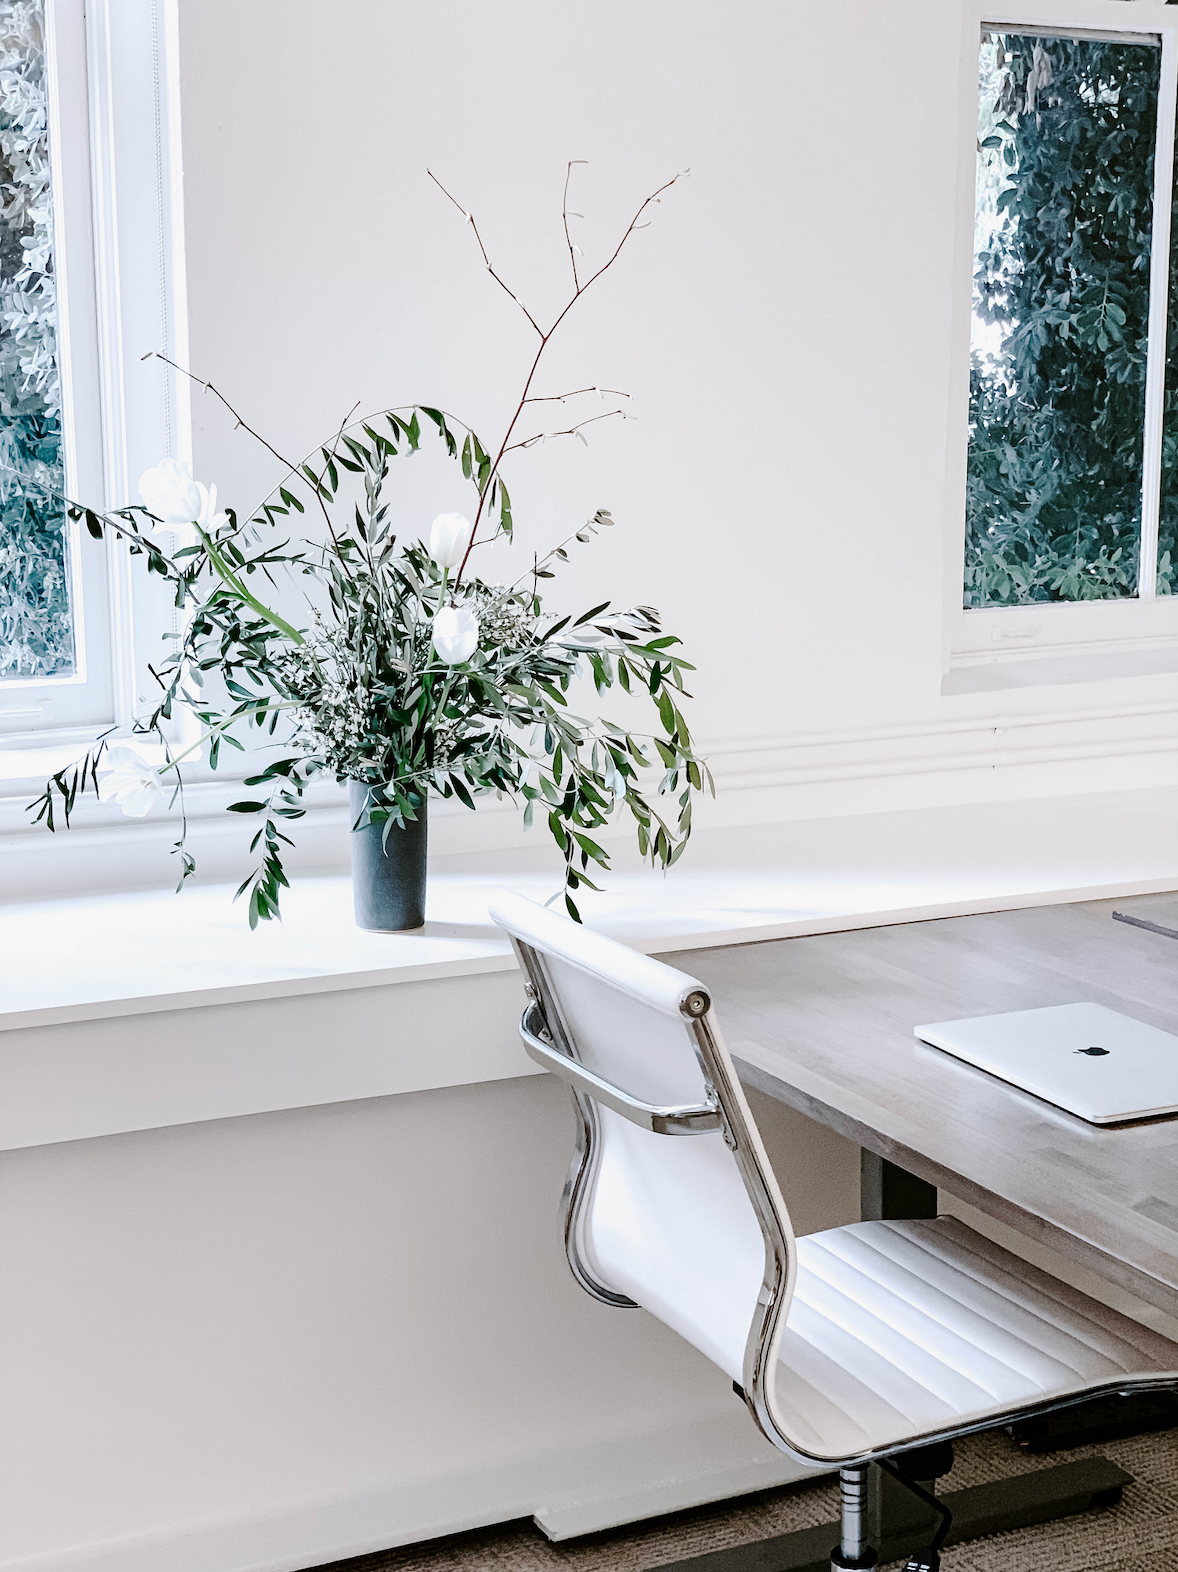 Styled shot from True Botanicals office of white office chair, wood table, laptop, and vase of flowers with white background.